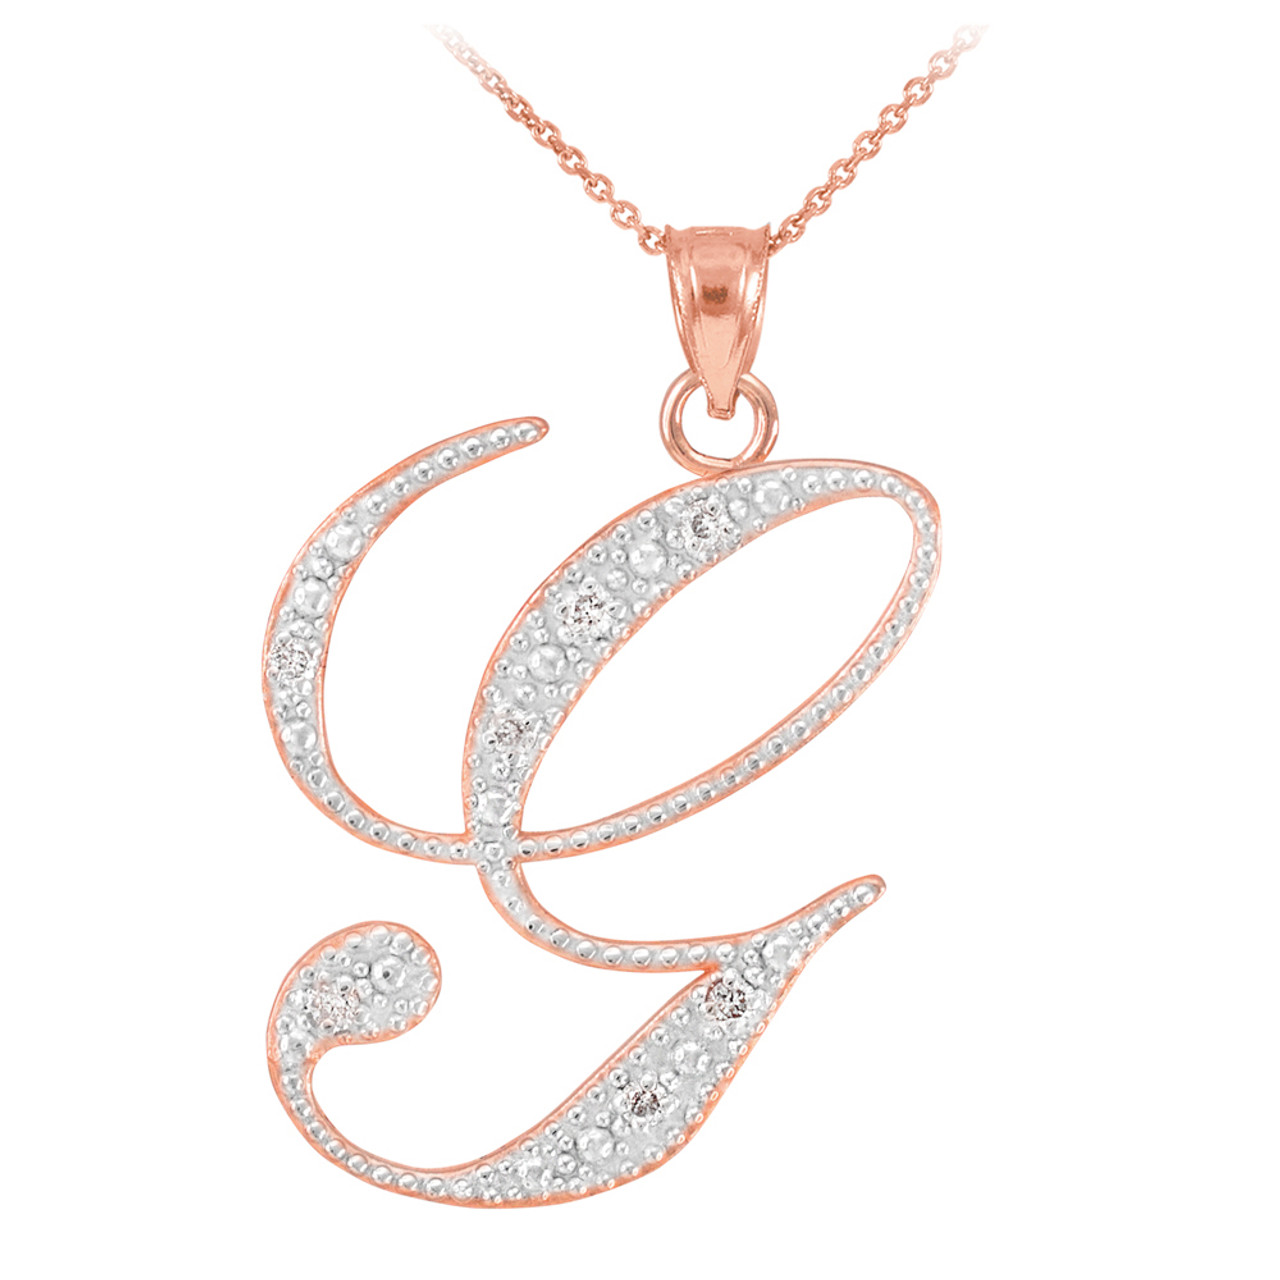 pendant in fit pendants elsa letter id jewelry necklaces peretti silver small constrain necklace hei wid ed sterling fmt h